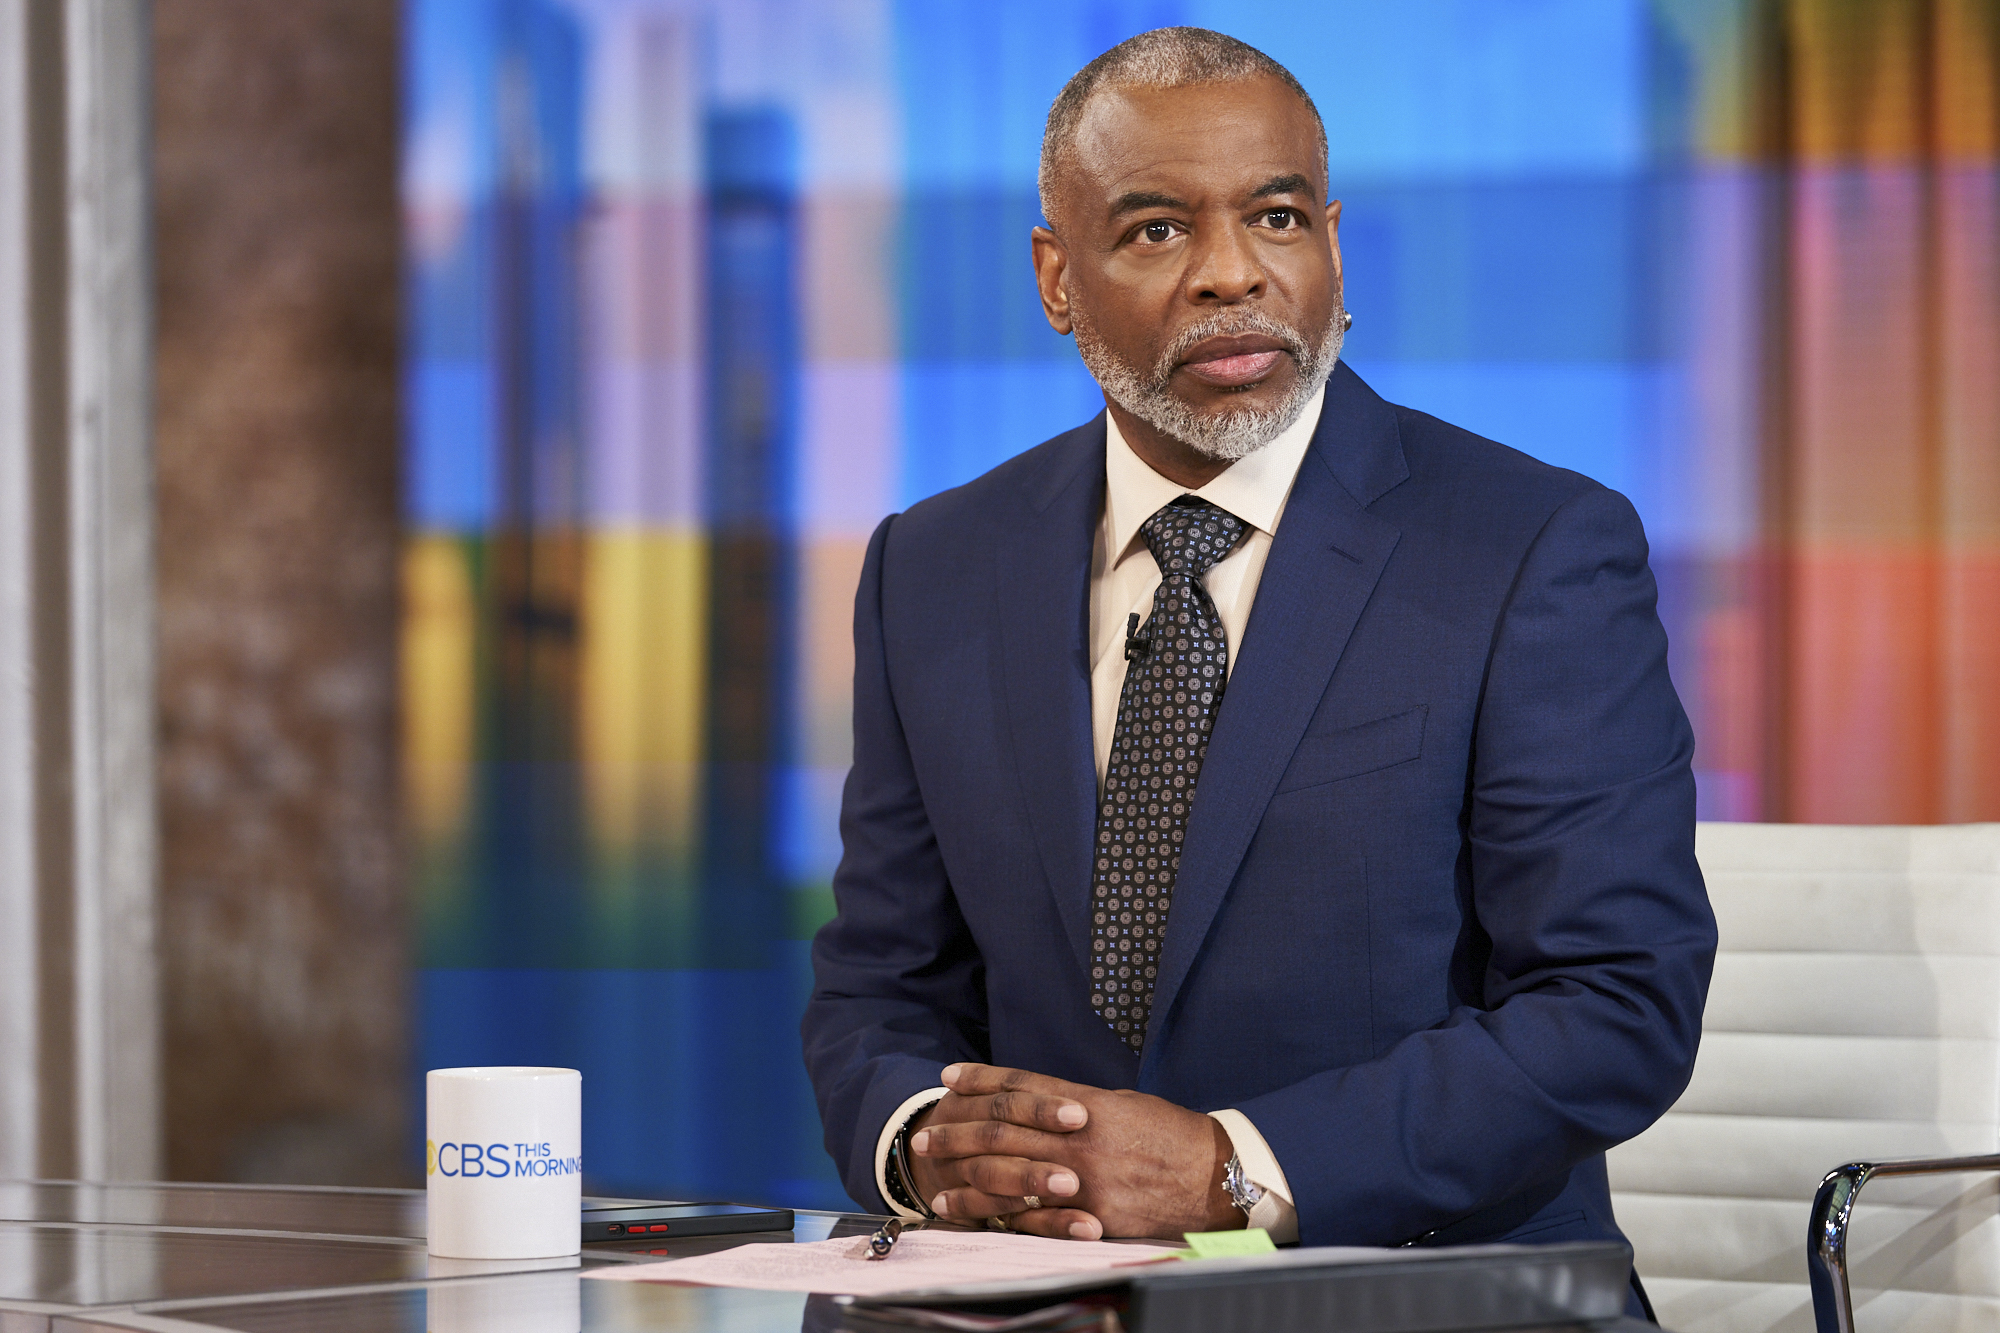 Actor LeVar Burton wears a navy blue suit and dark tie as he guest hosts on 'CBS This Morning' in May 2021.